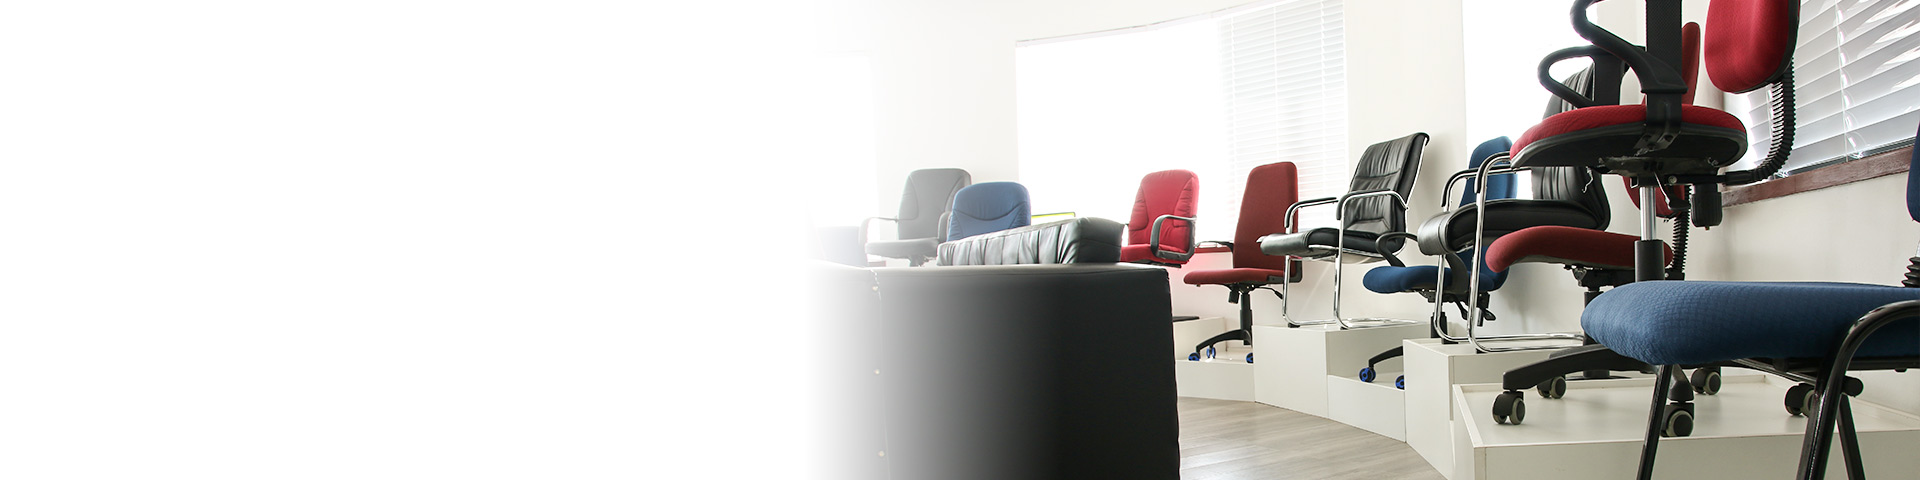 ModernFurnitures-Banner-Showroom-Chairs